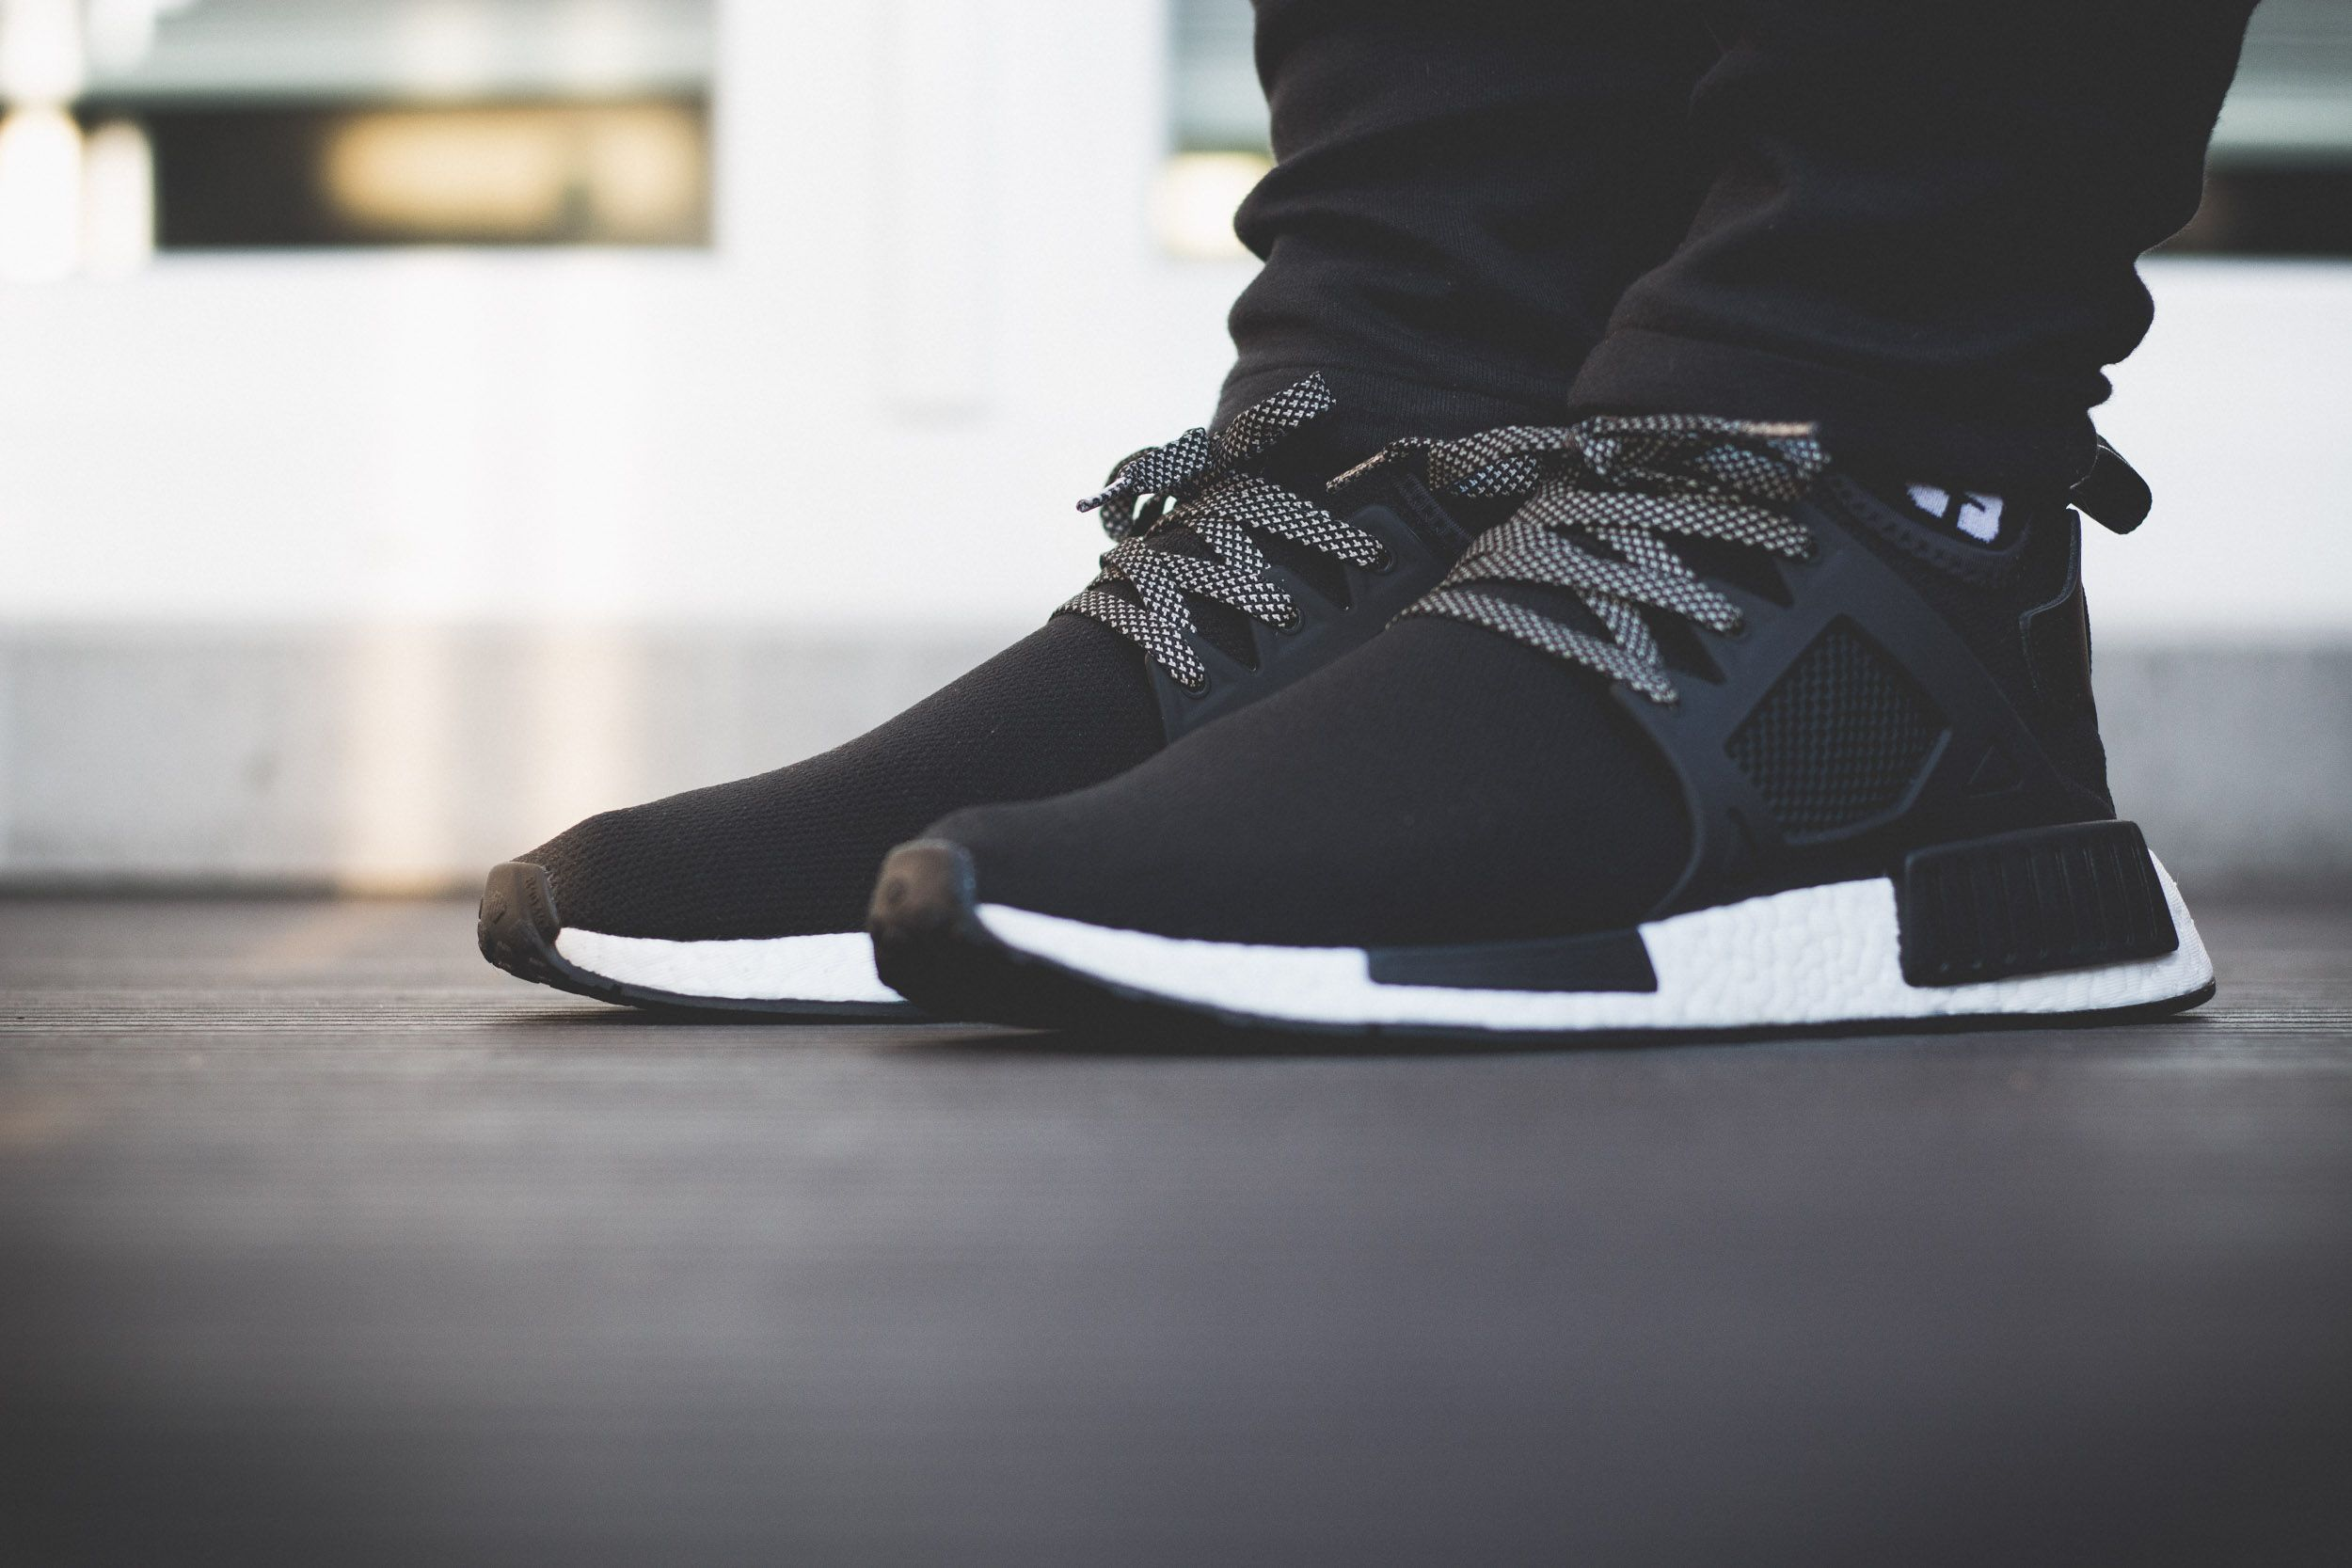 349de93b4 adidas NMD XR1 – Black   White On Feet